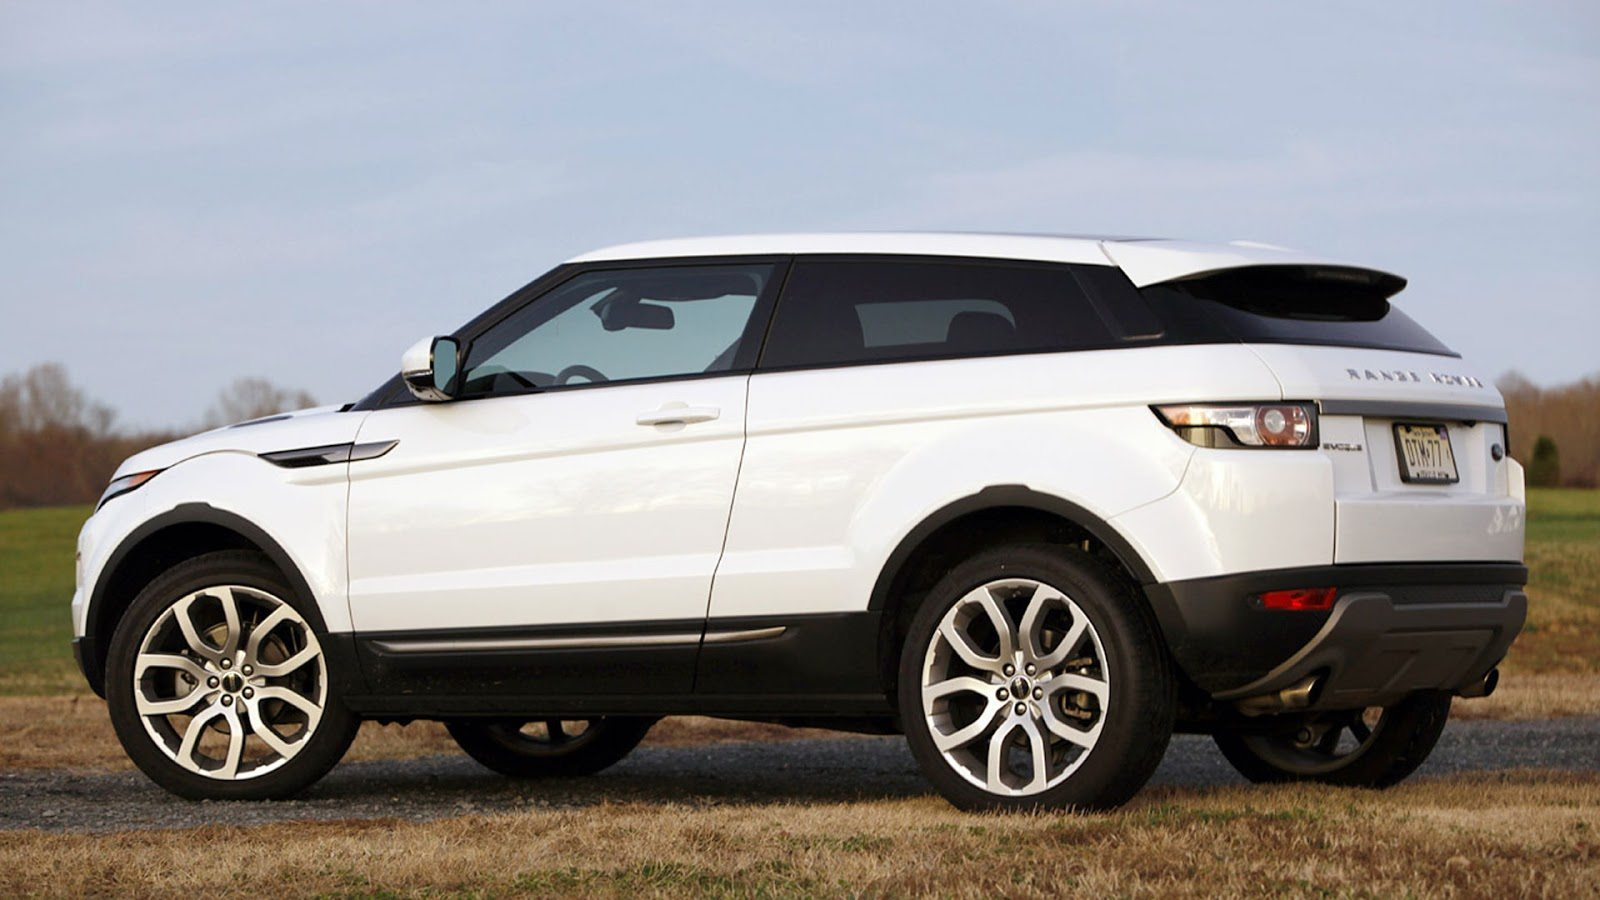 2017 land rover range rover evoque se pure car 2017 land rover range rover evoque car price. Black Bedroom Furniture Sets. Home Design Ideas